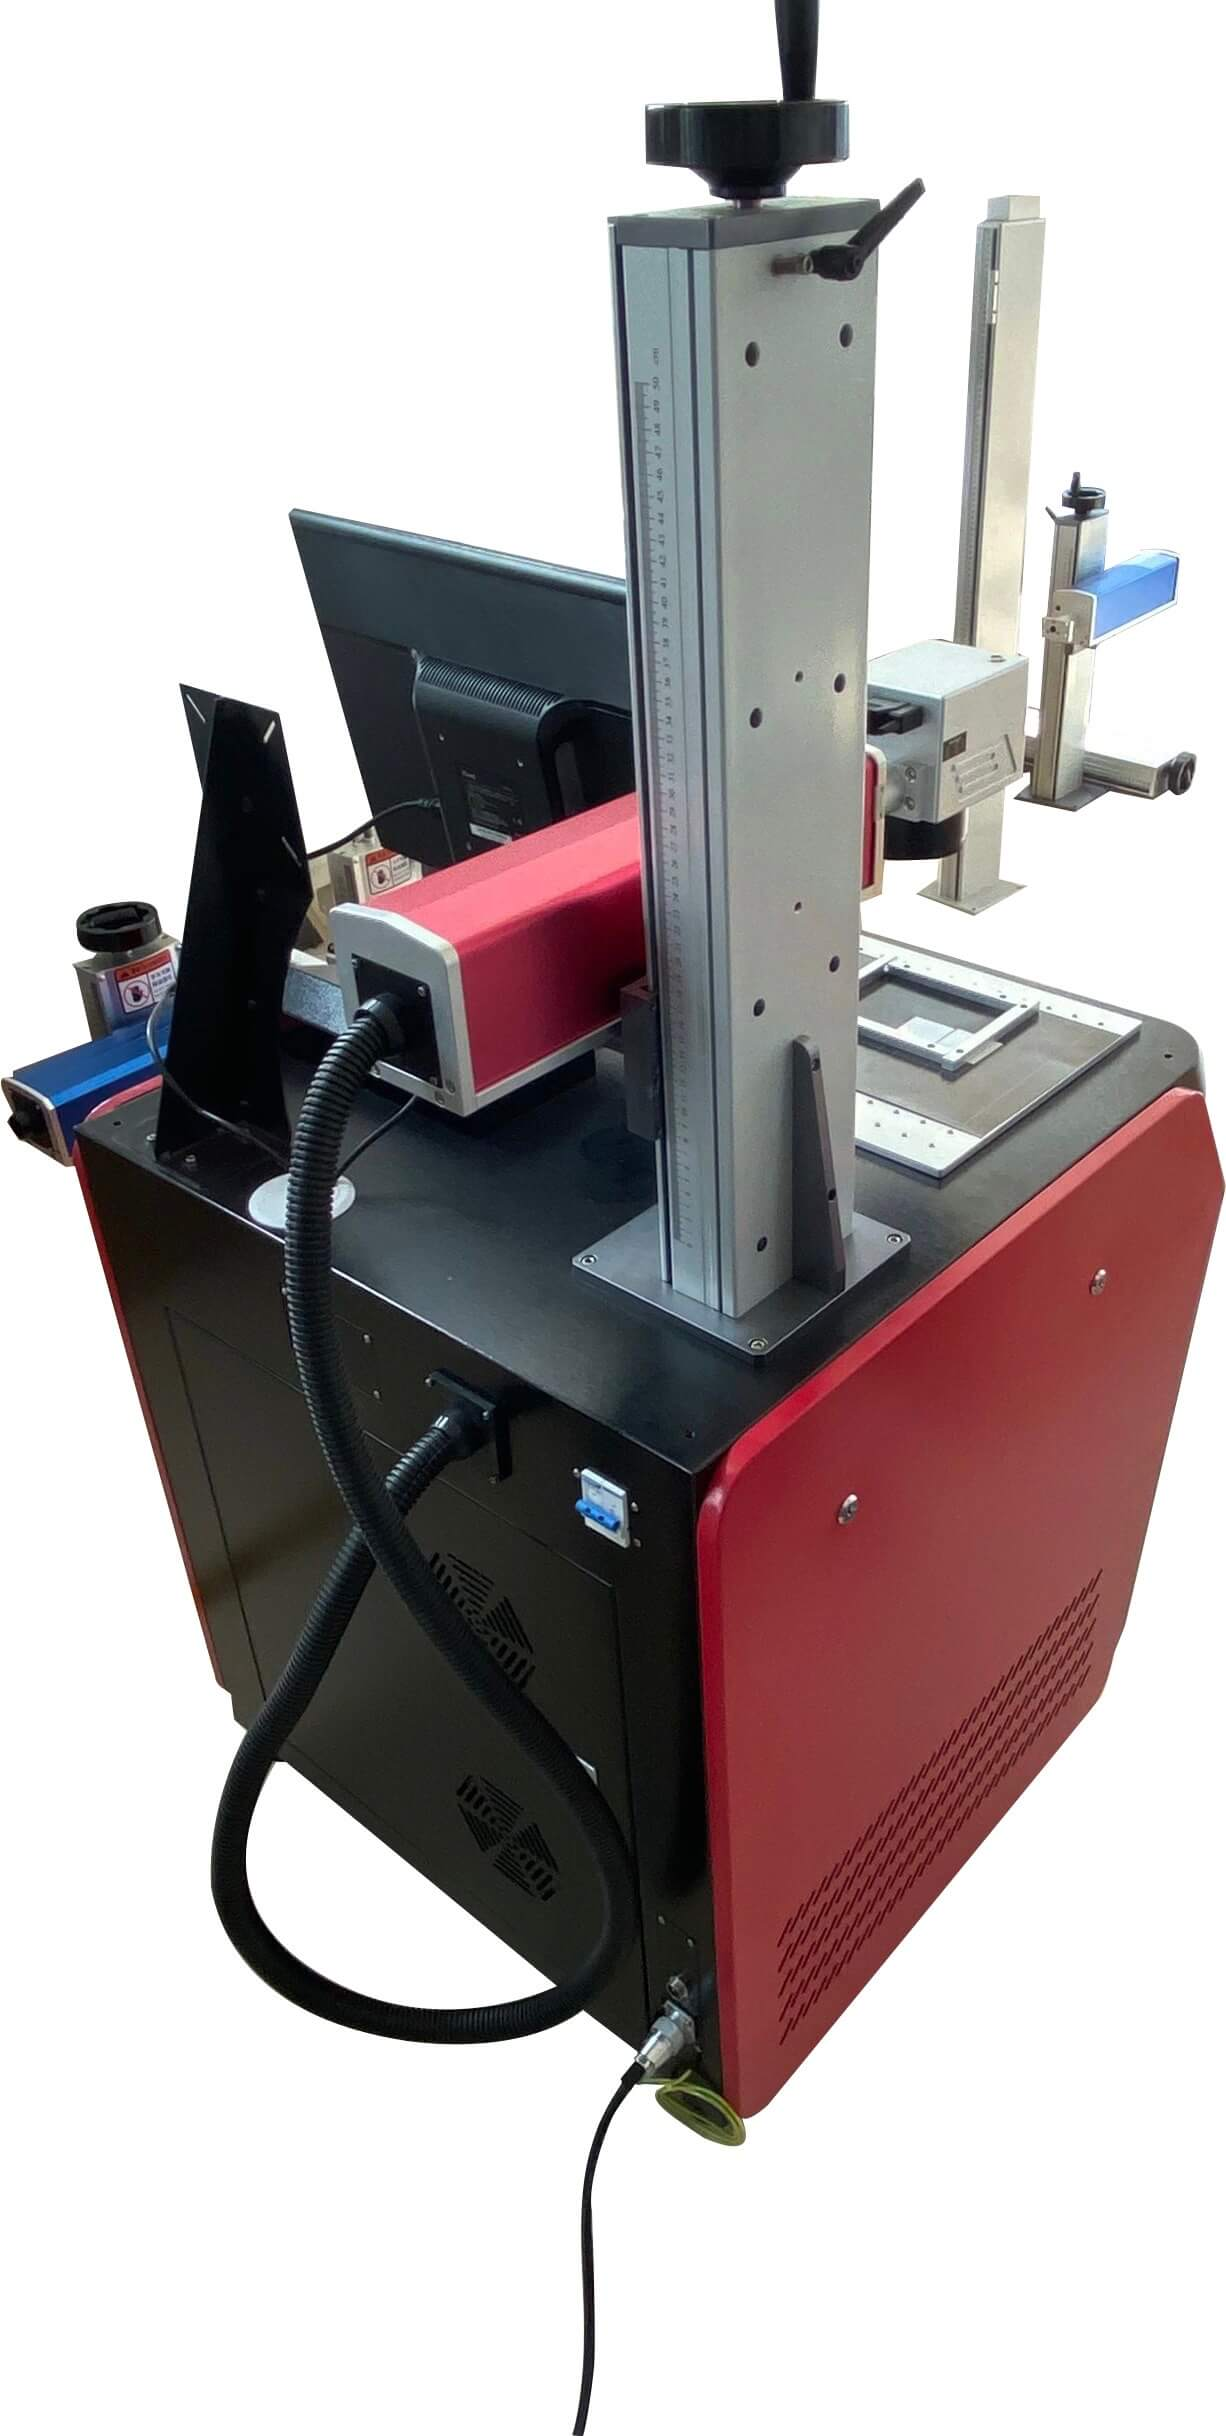 JPT Laser Marking Machine For Deep Engraving